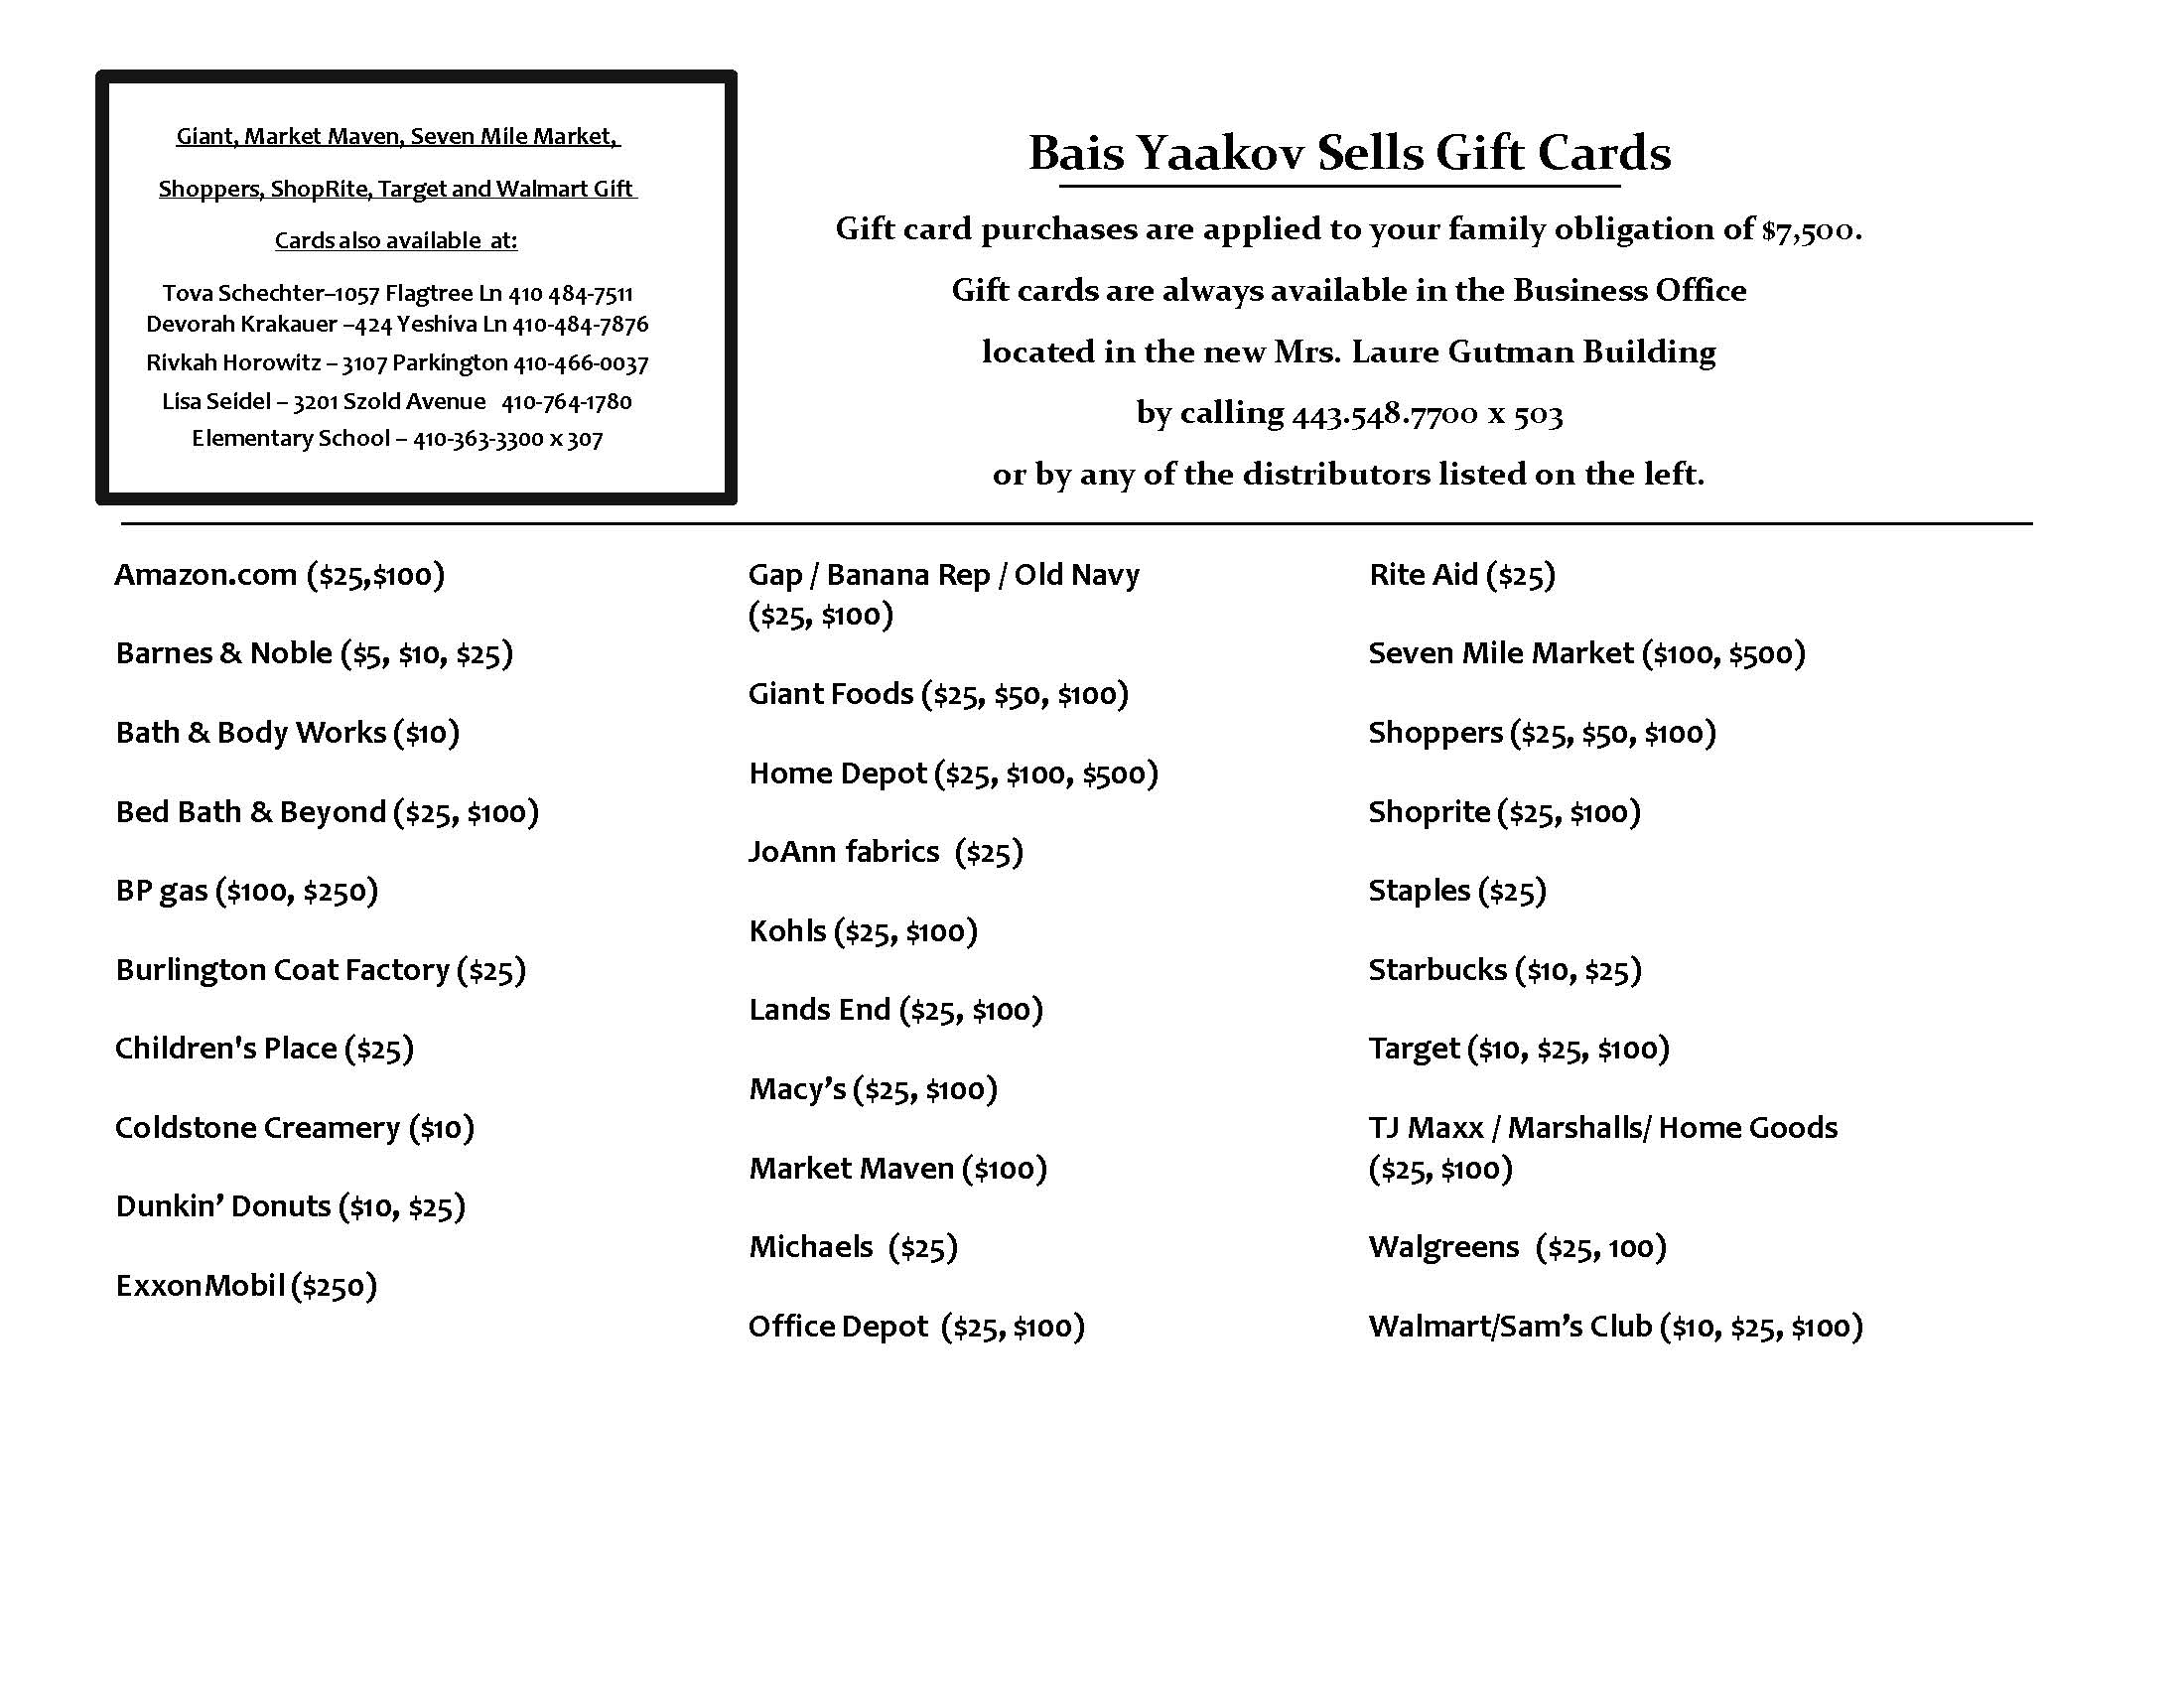 Gift Cards List 7-21